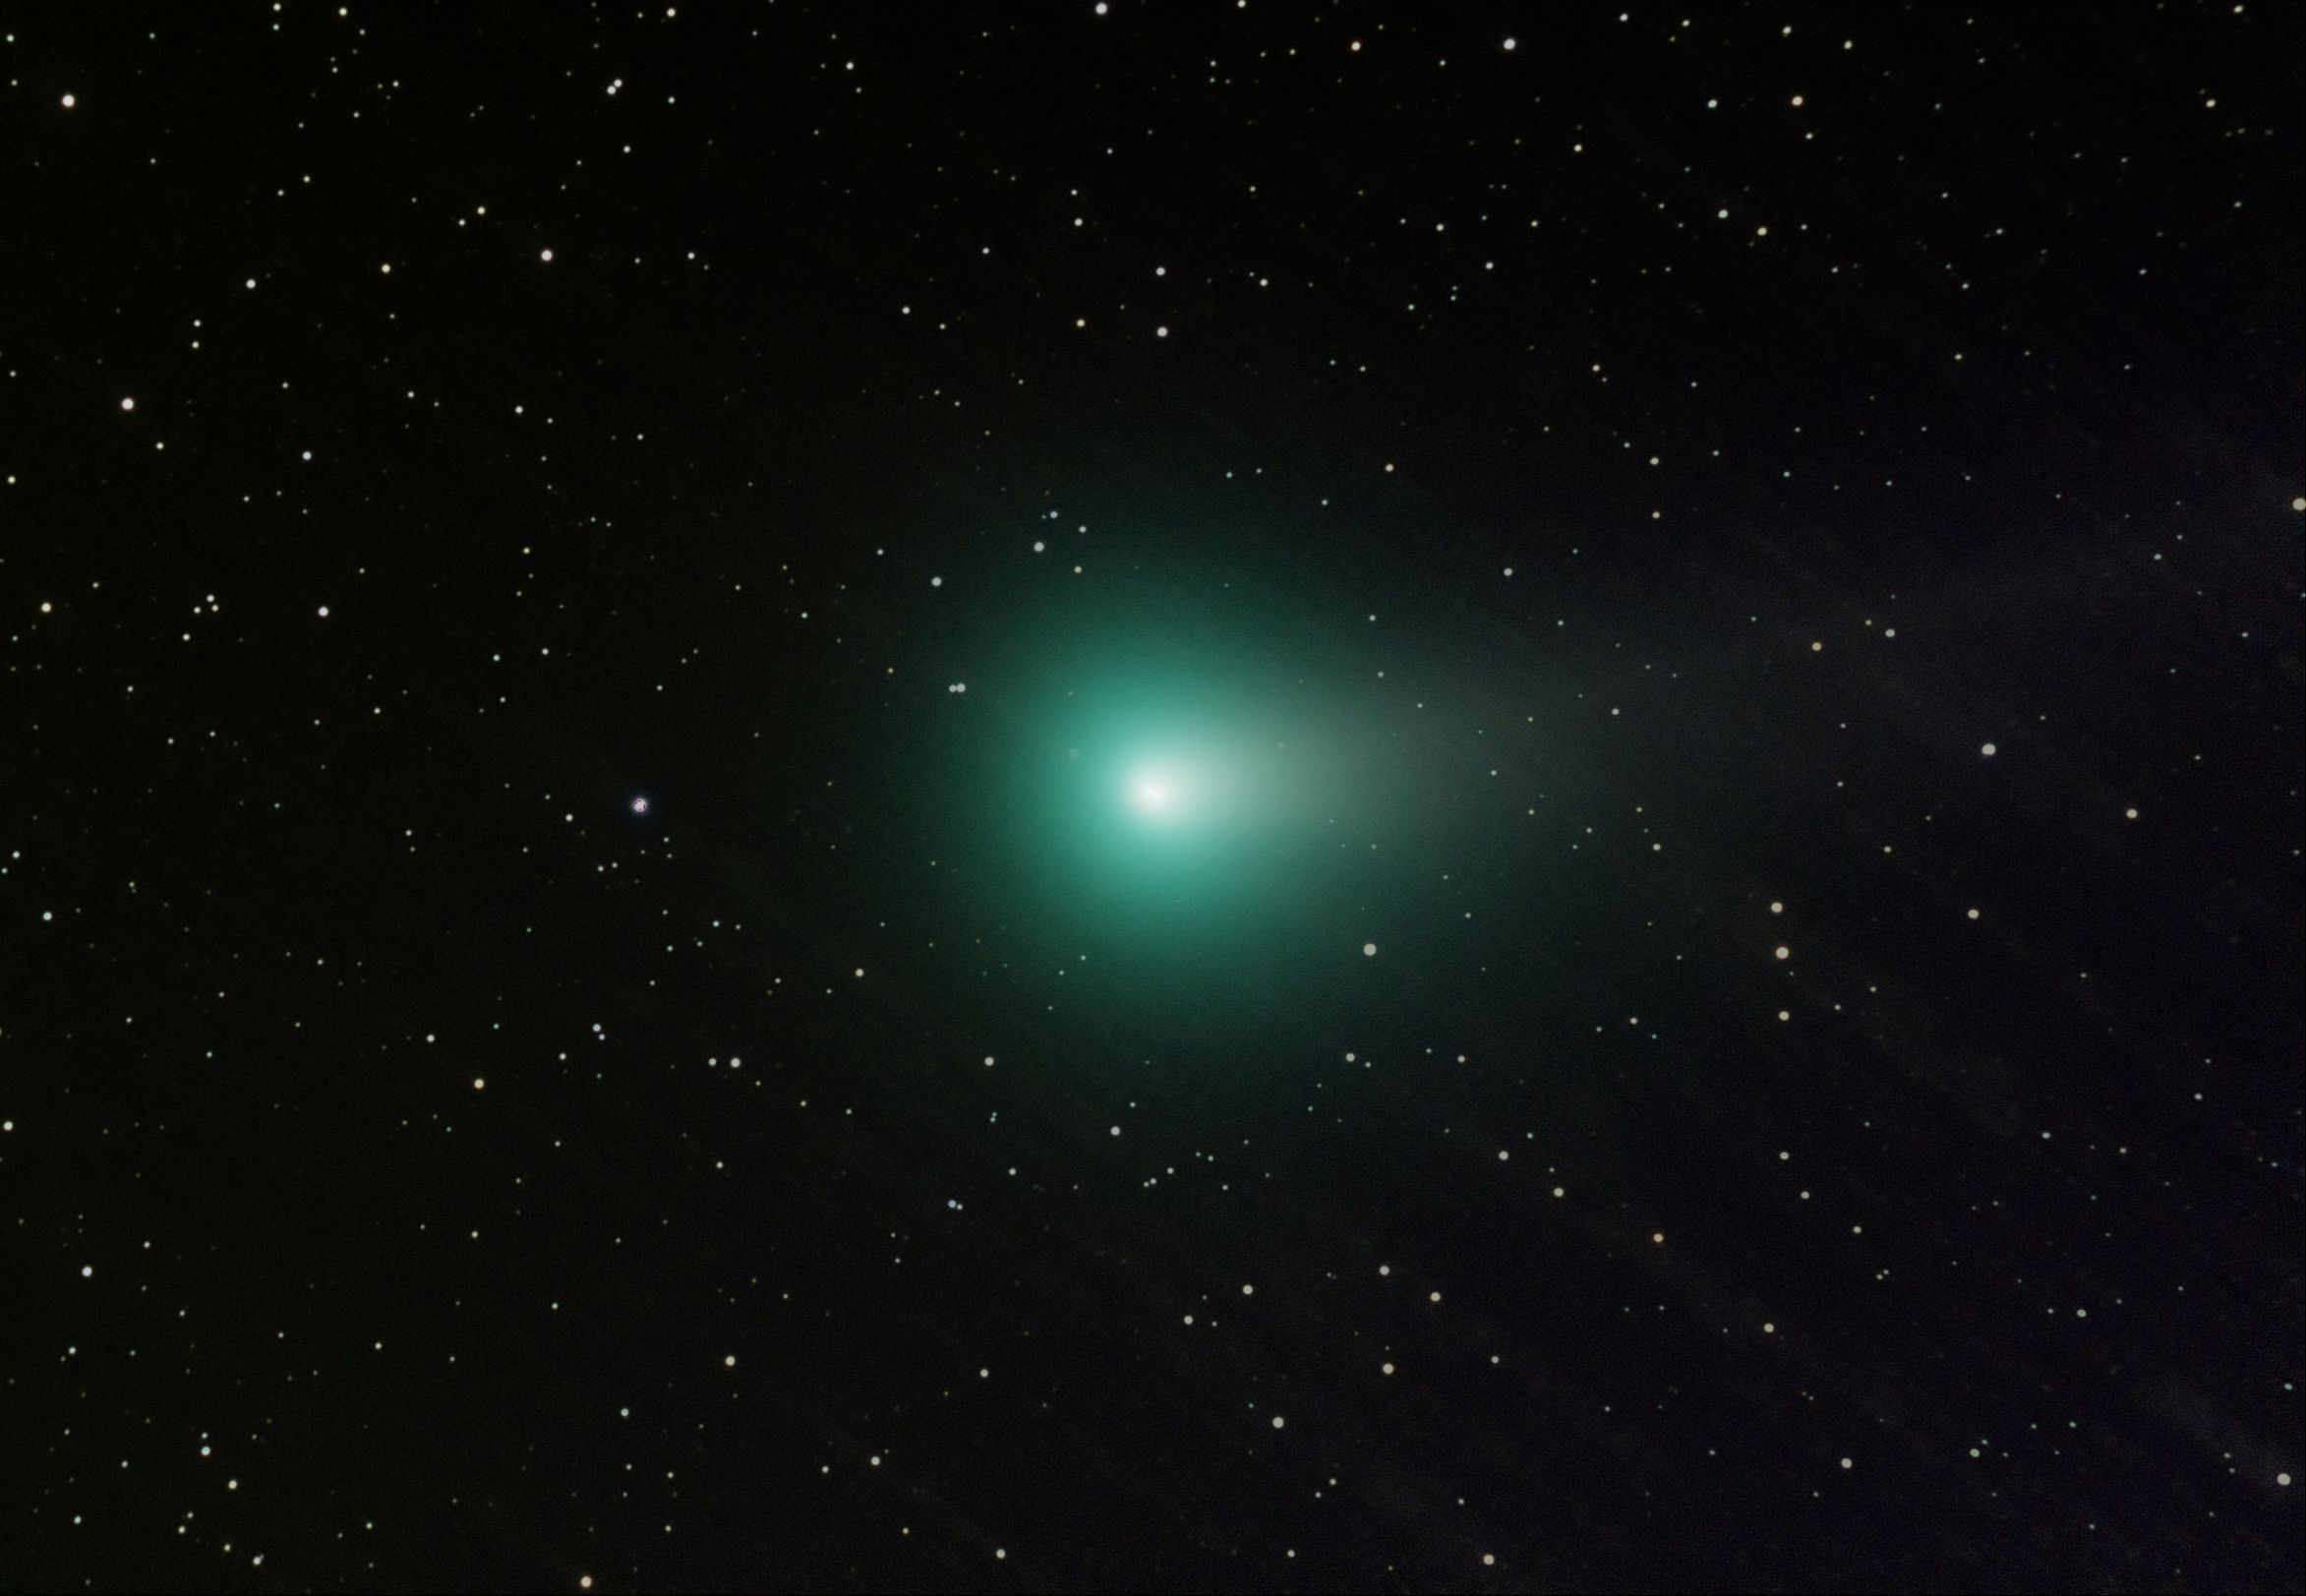 Comet Lovejoy 11-3-13 at US Store